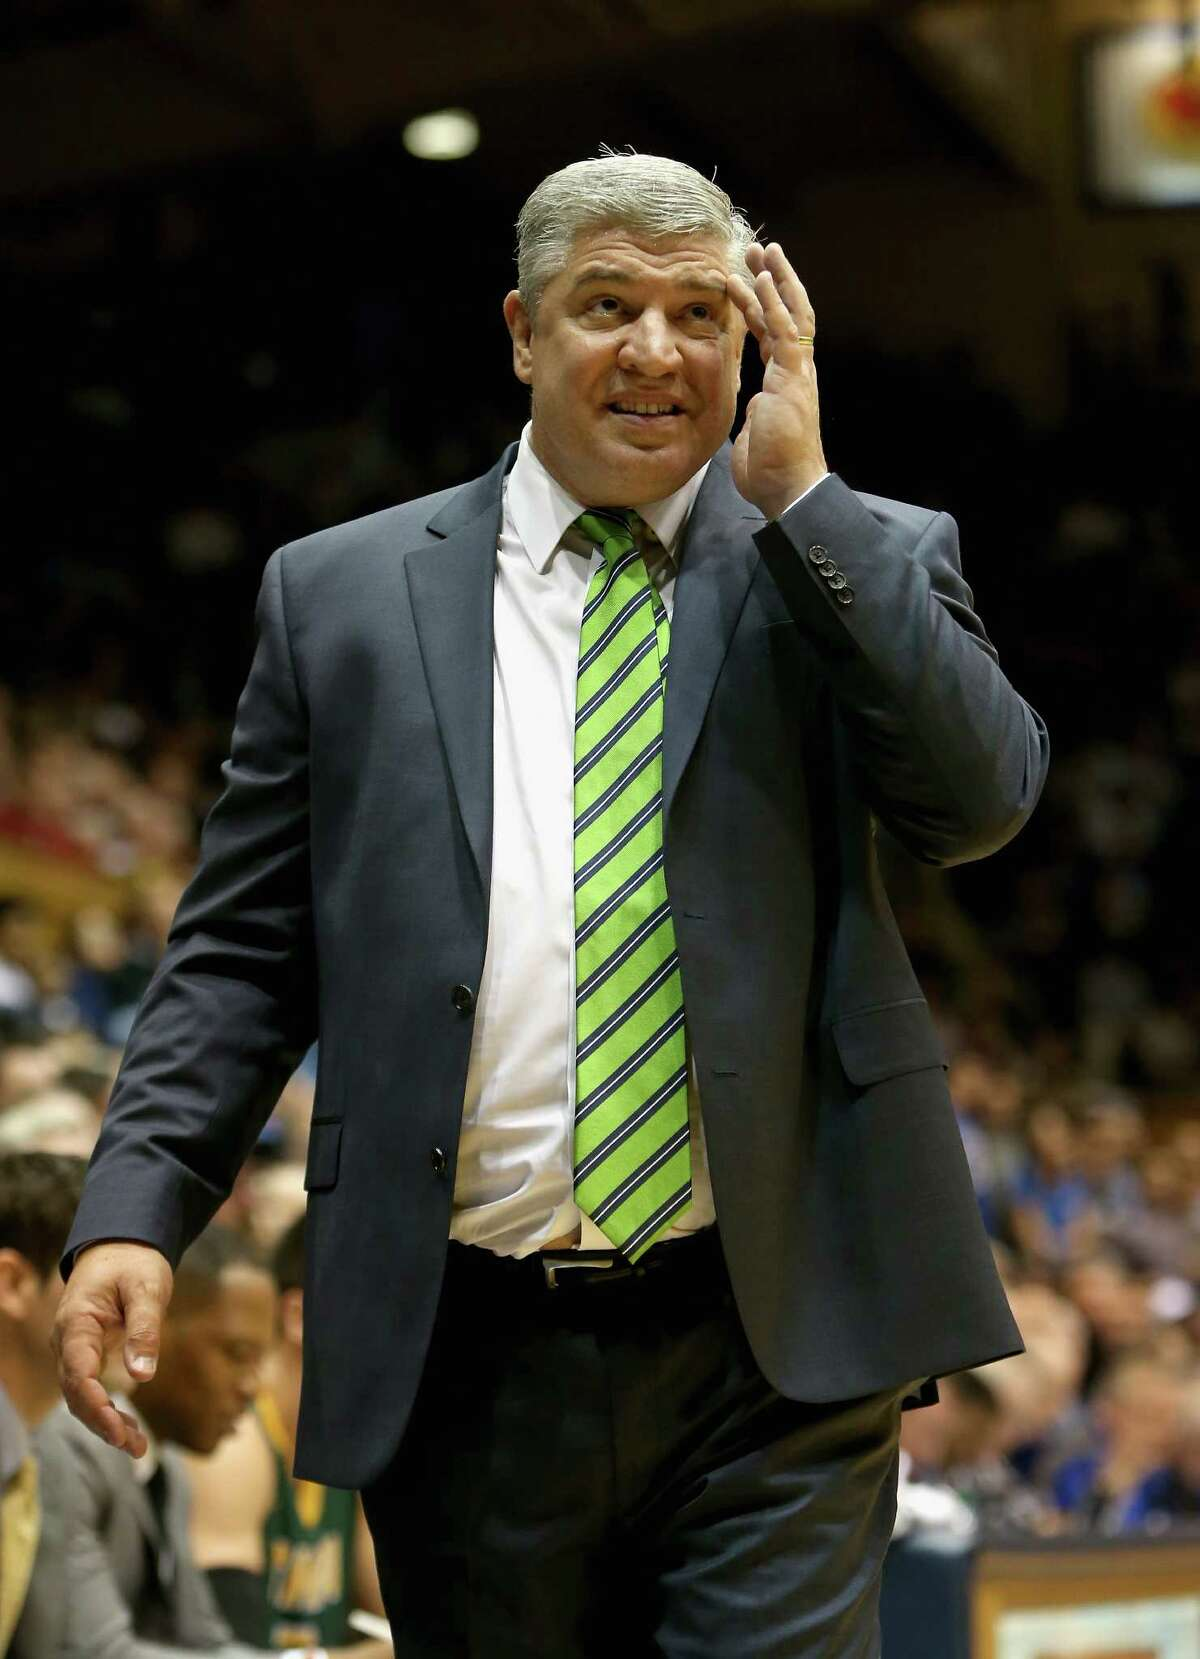 DURHAM, NC - NOVEMBER 13: Head coach Jimmy Patsos of the Siena Saints watches on during their game against the Duke Blue Devils at Cameron Indoor Stadium on November 13, 2015 in Durham, North Carolina. (Photo by Streeter Lecka/Getty Images) ORG XMIT: 587451721